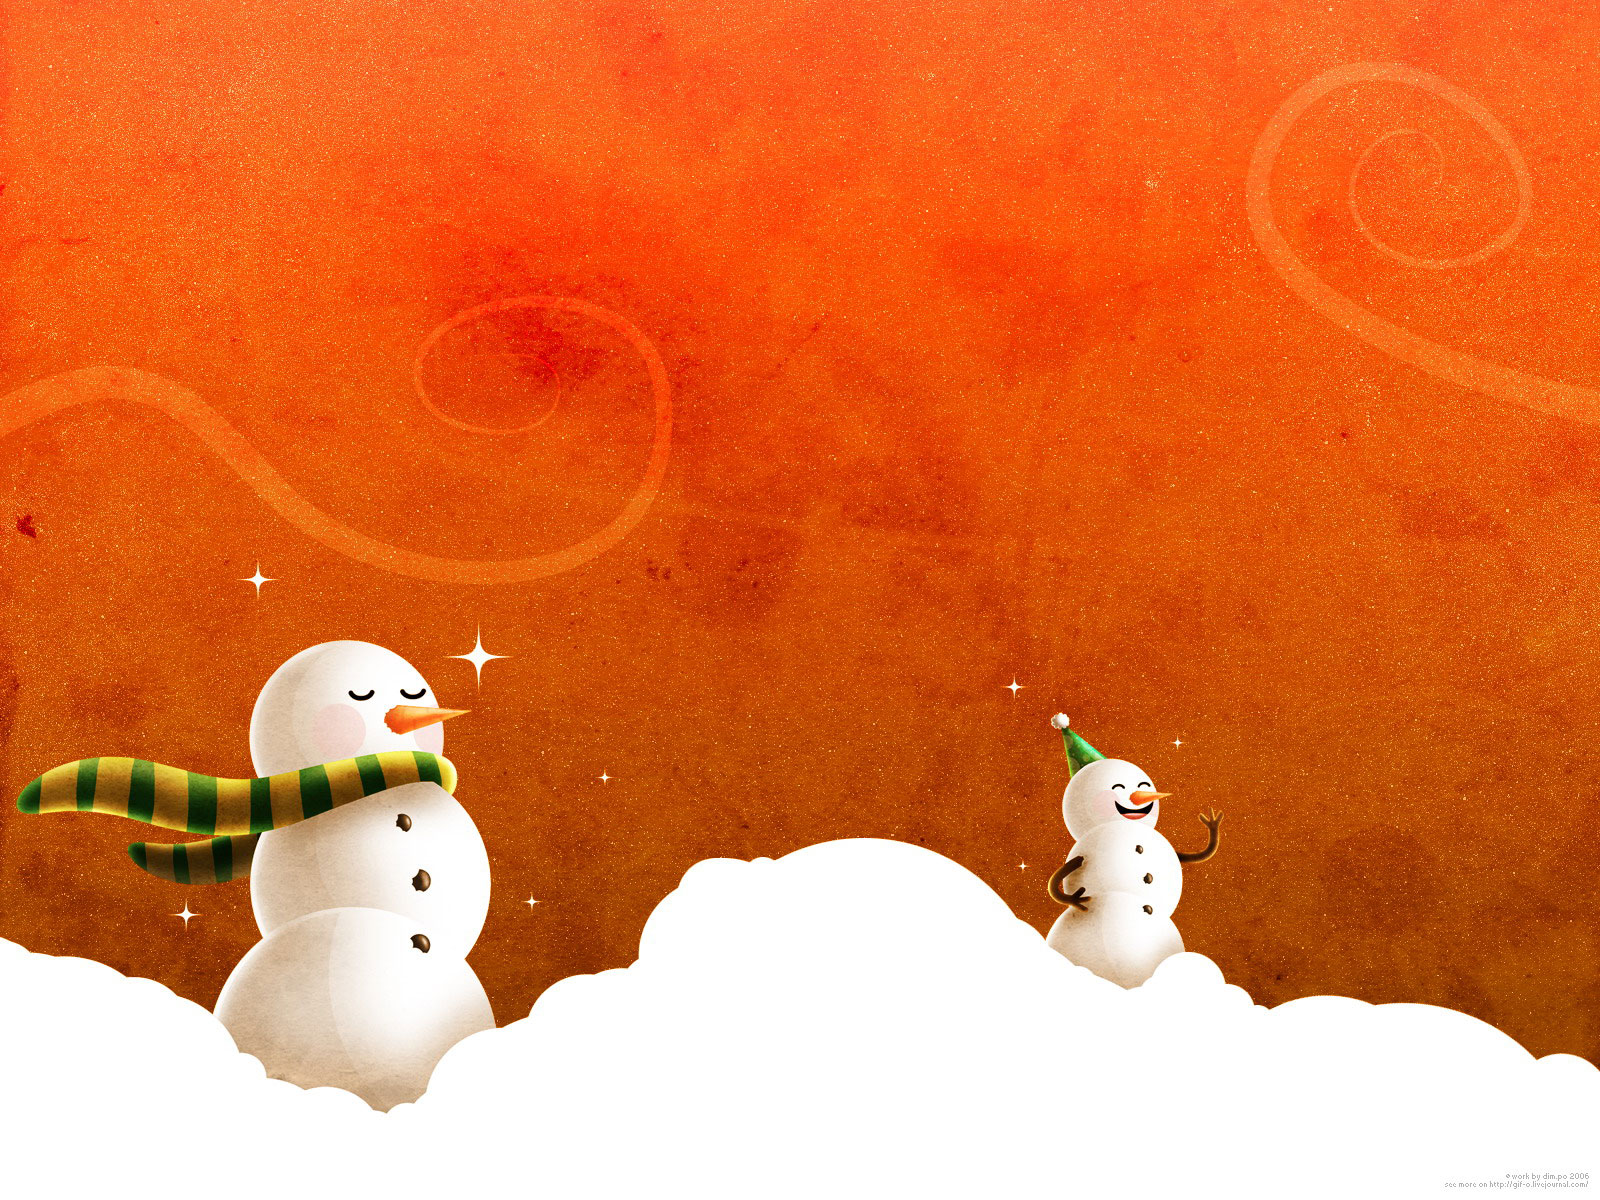 Christmas Wallpaper 2 1600x1200